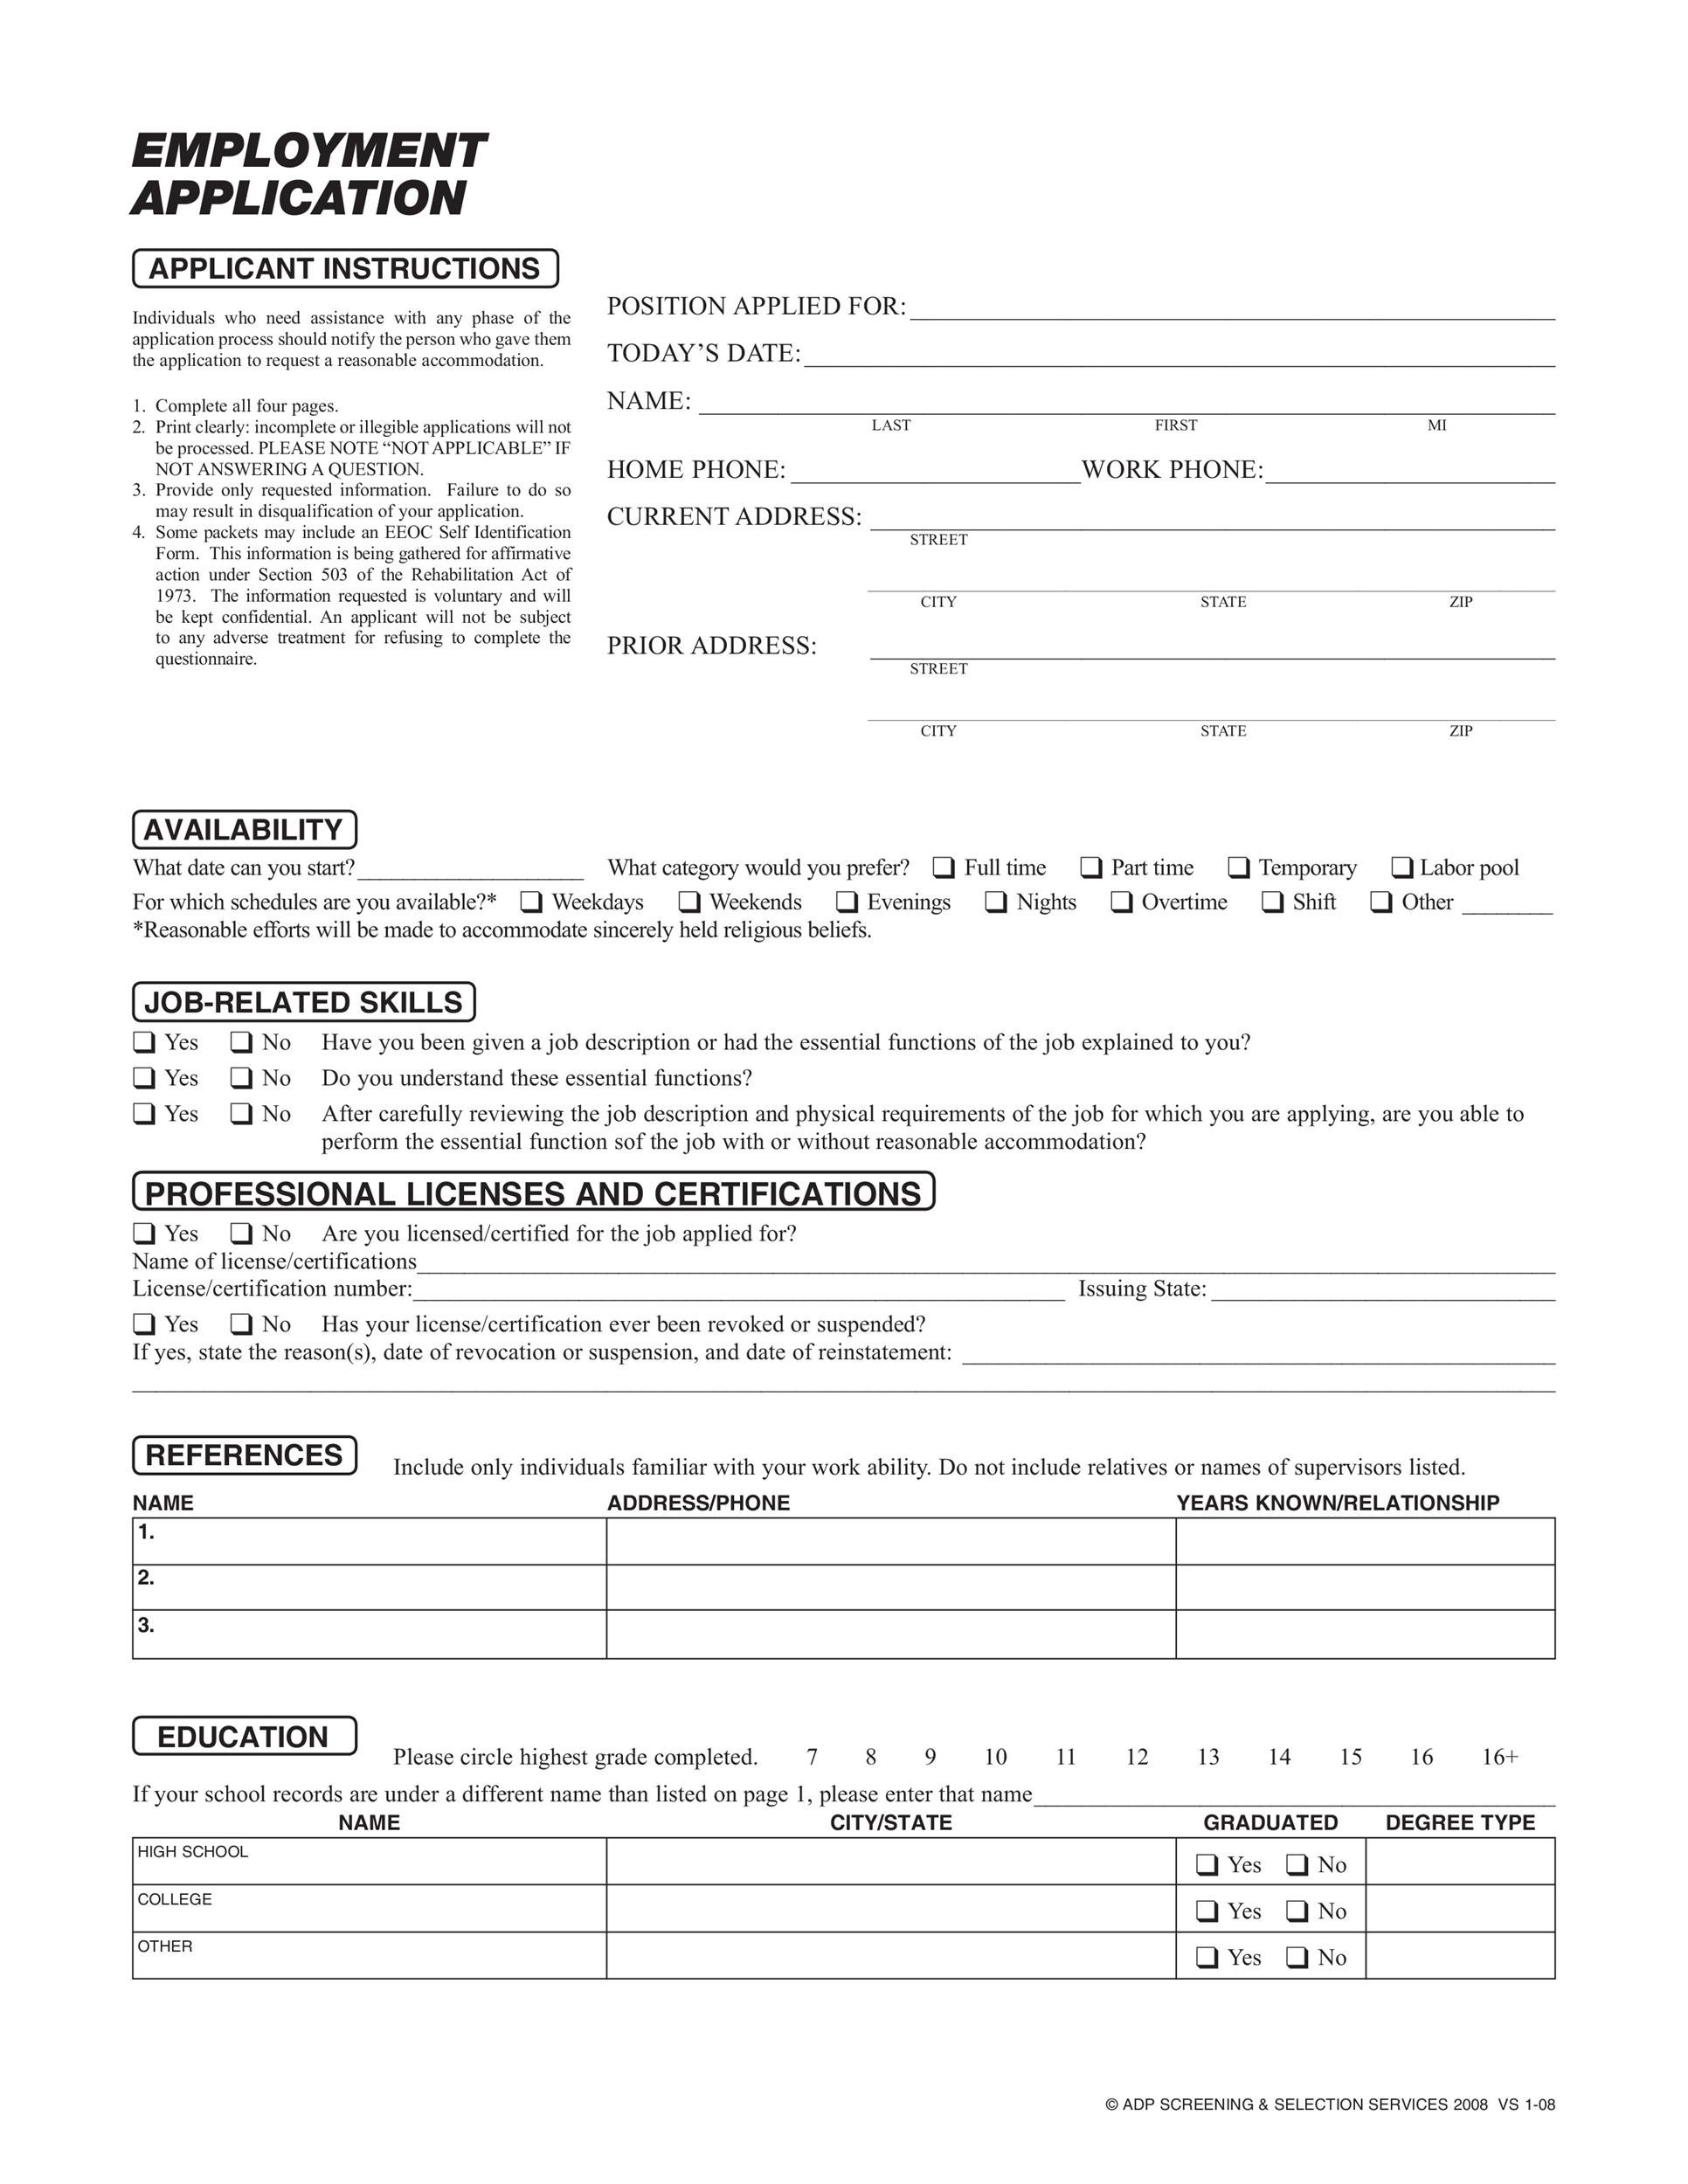 Free employment application template 13